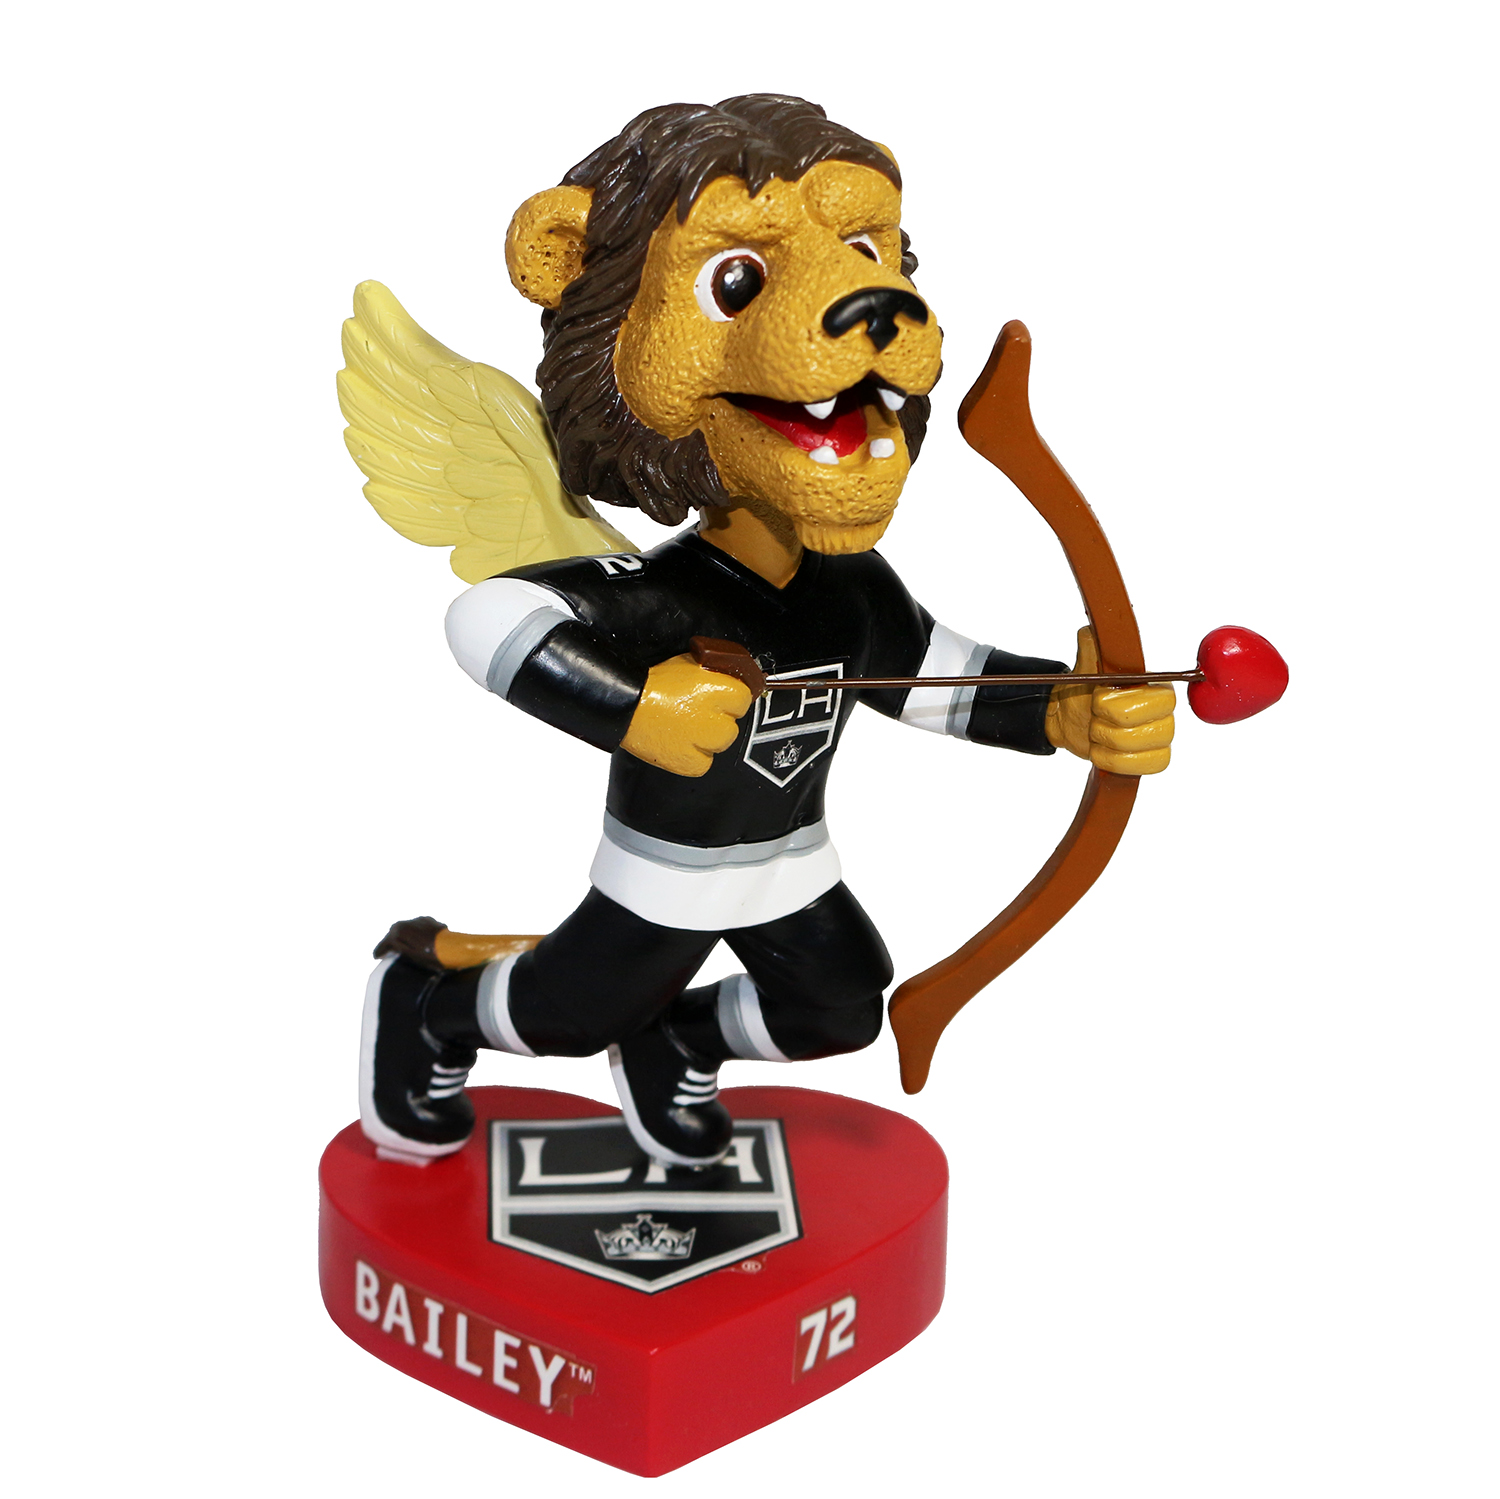 Los Angeles Kings Bailey Valentine's Day Mascot Bobblehead